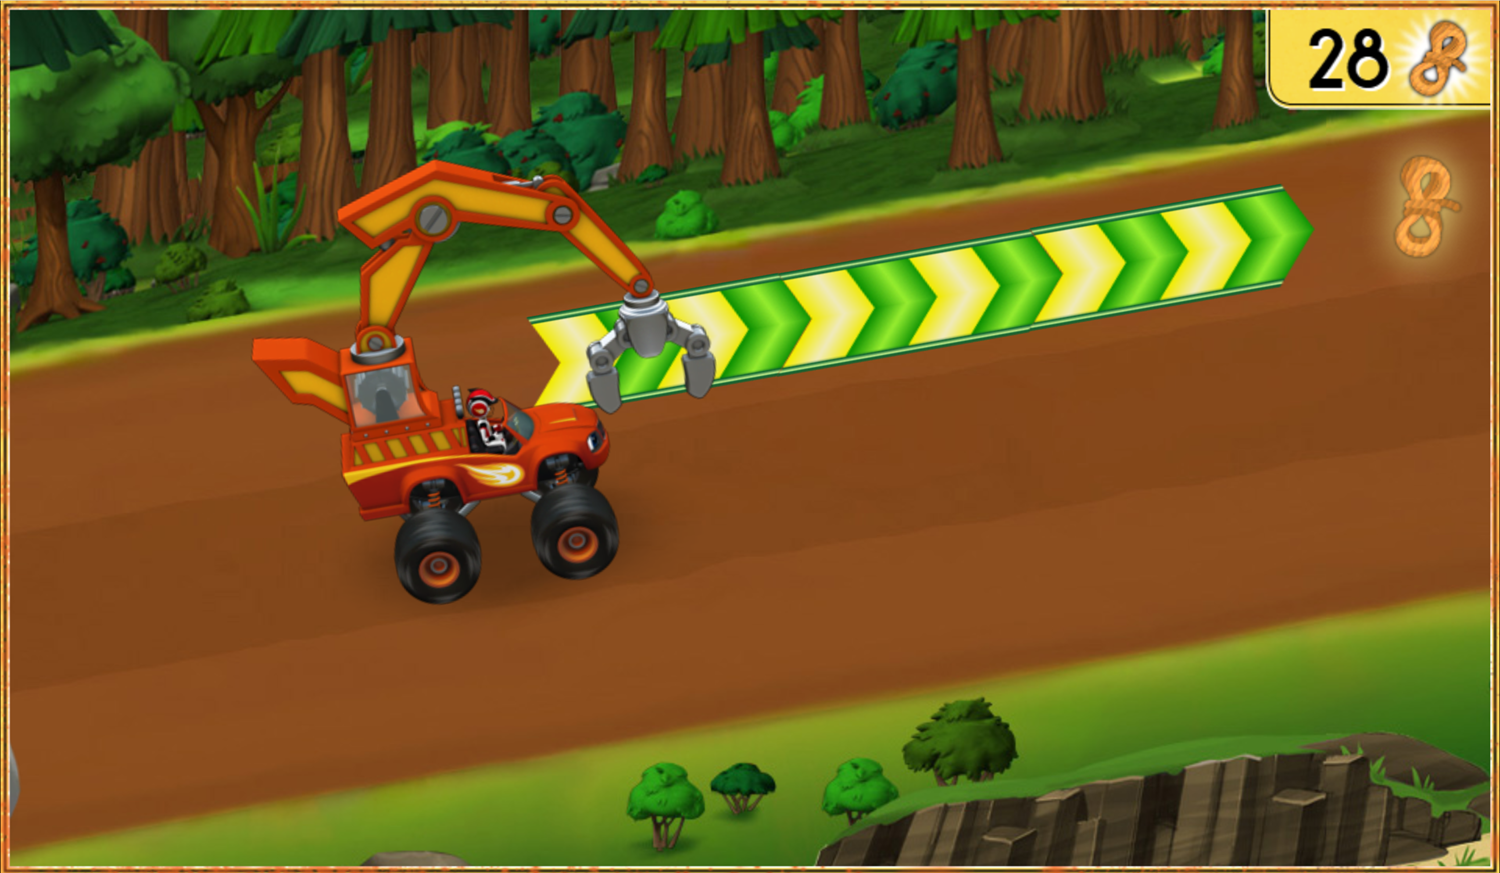 Blaze and the Monster Machines Mud Mountain Rescue Wood Chipping Truck Screenshot.